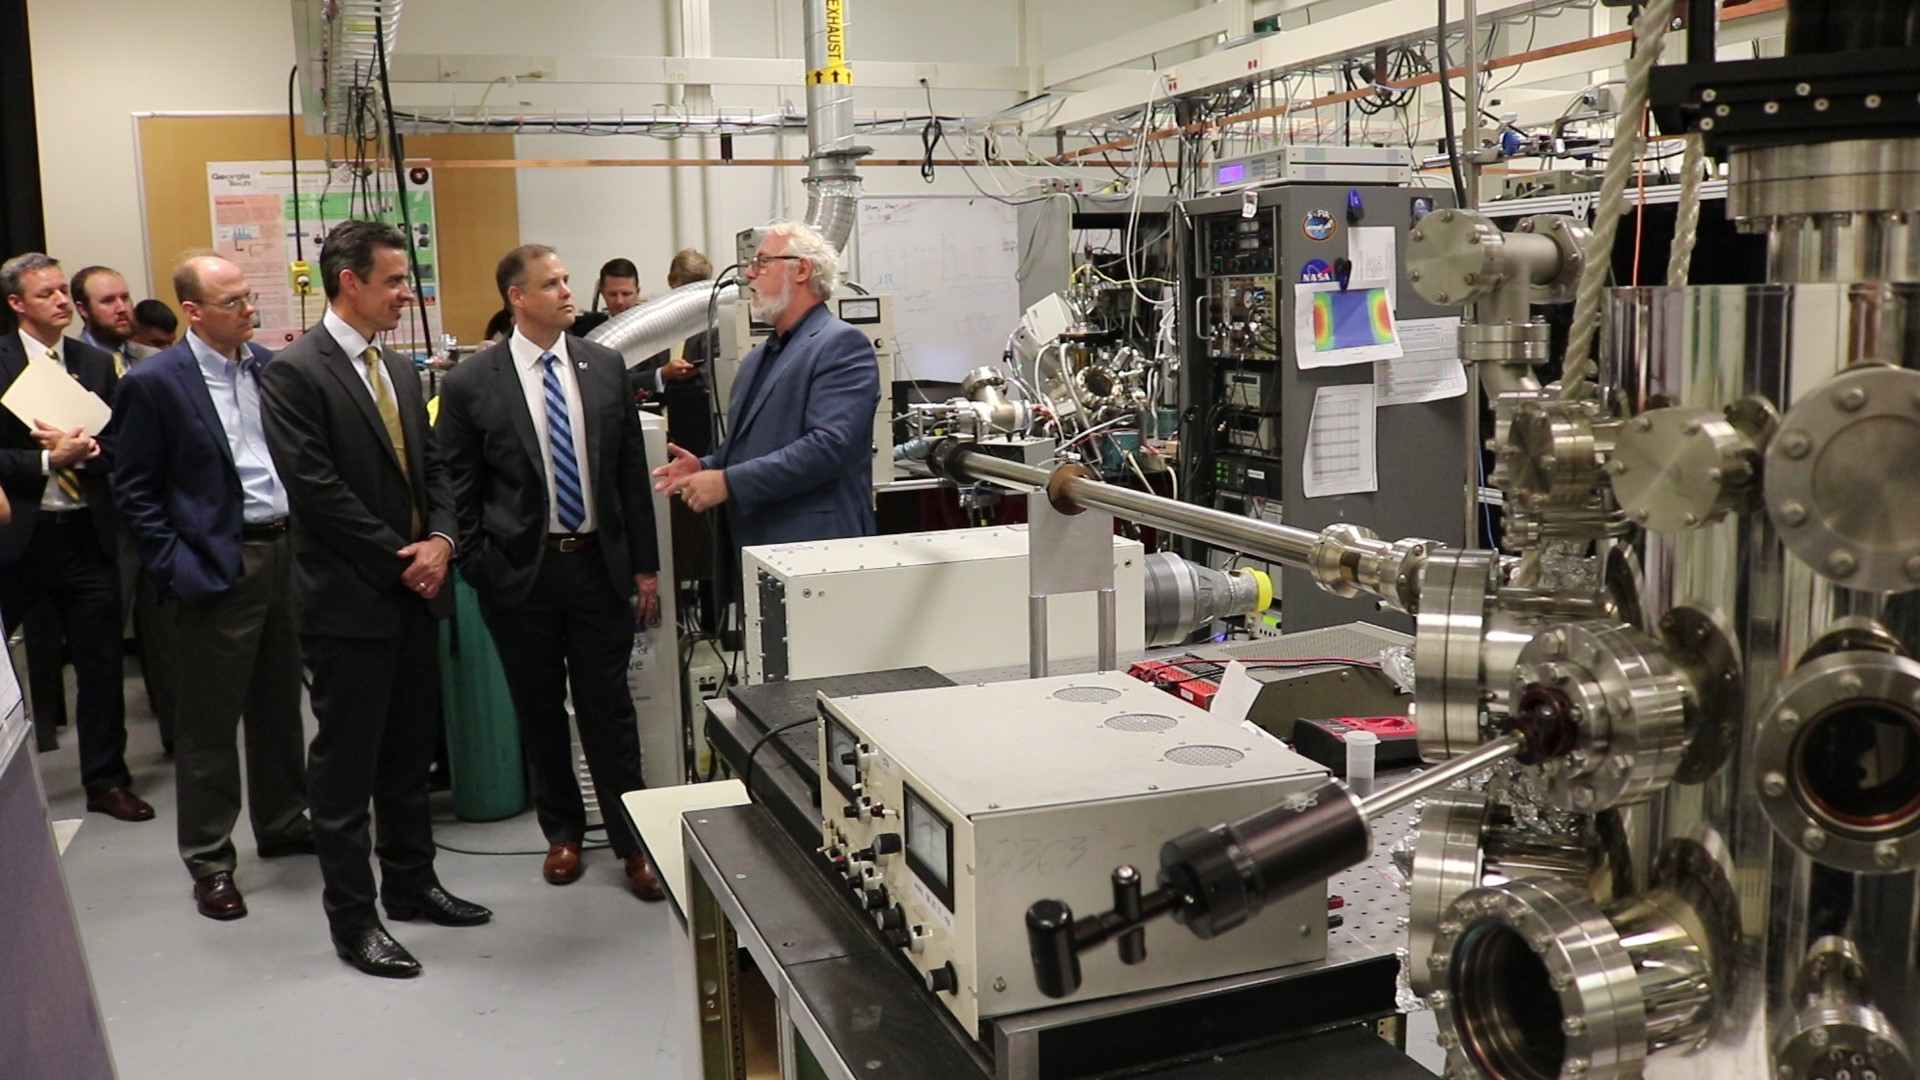 A NASA delegation led by Administrator Jim Bridenstine visited Thom Orlando' REVEALS research lab July 31, 2019. (Photo by Renay San Miguel)